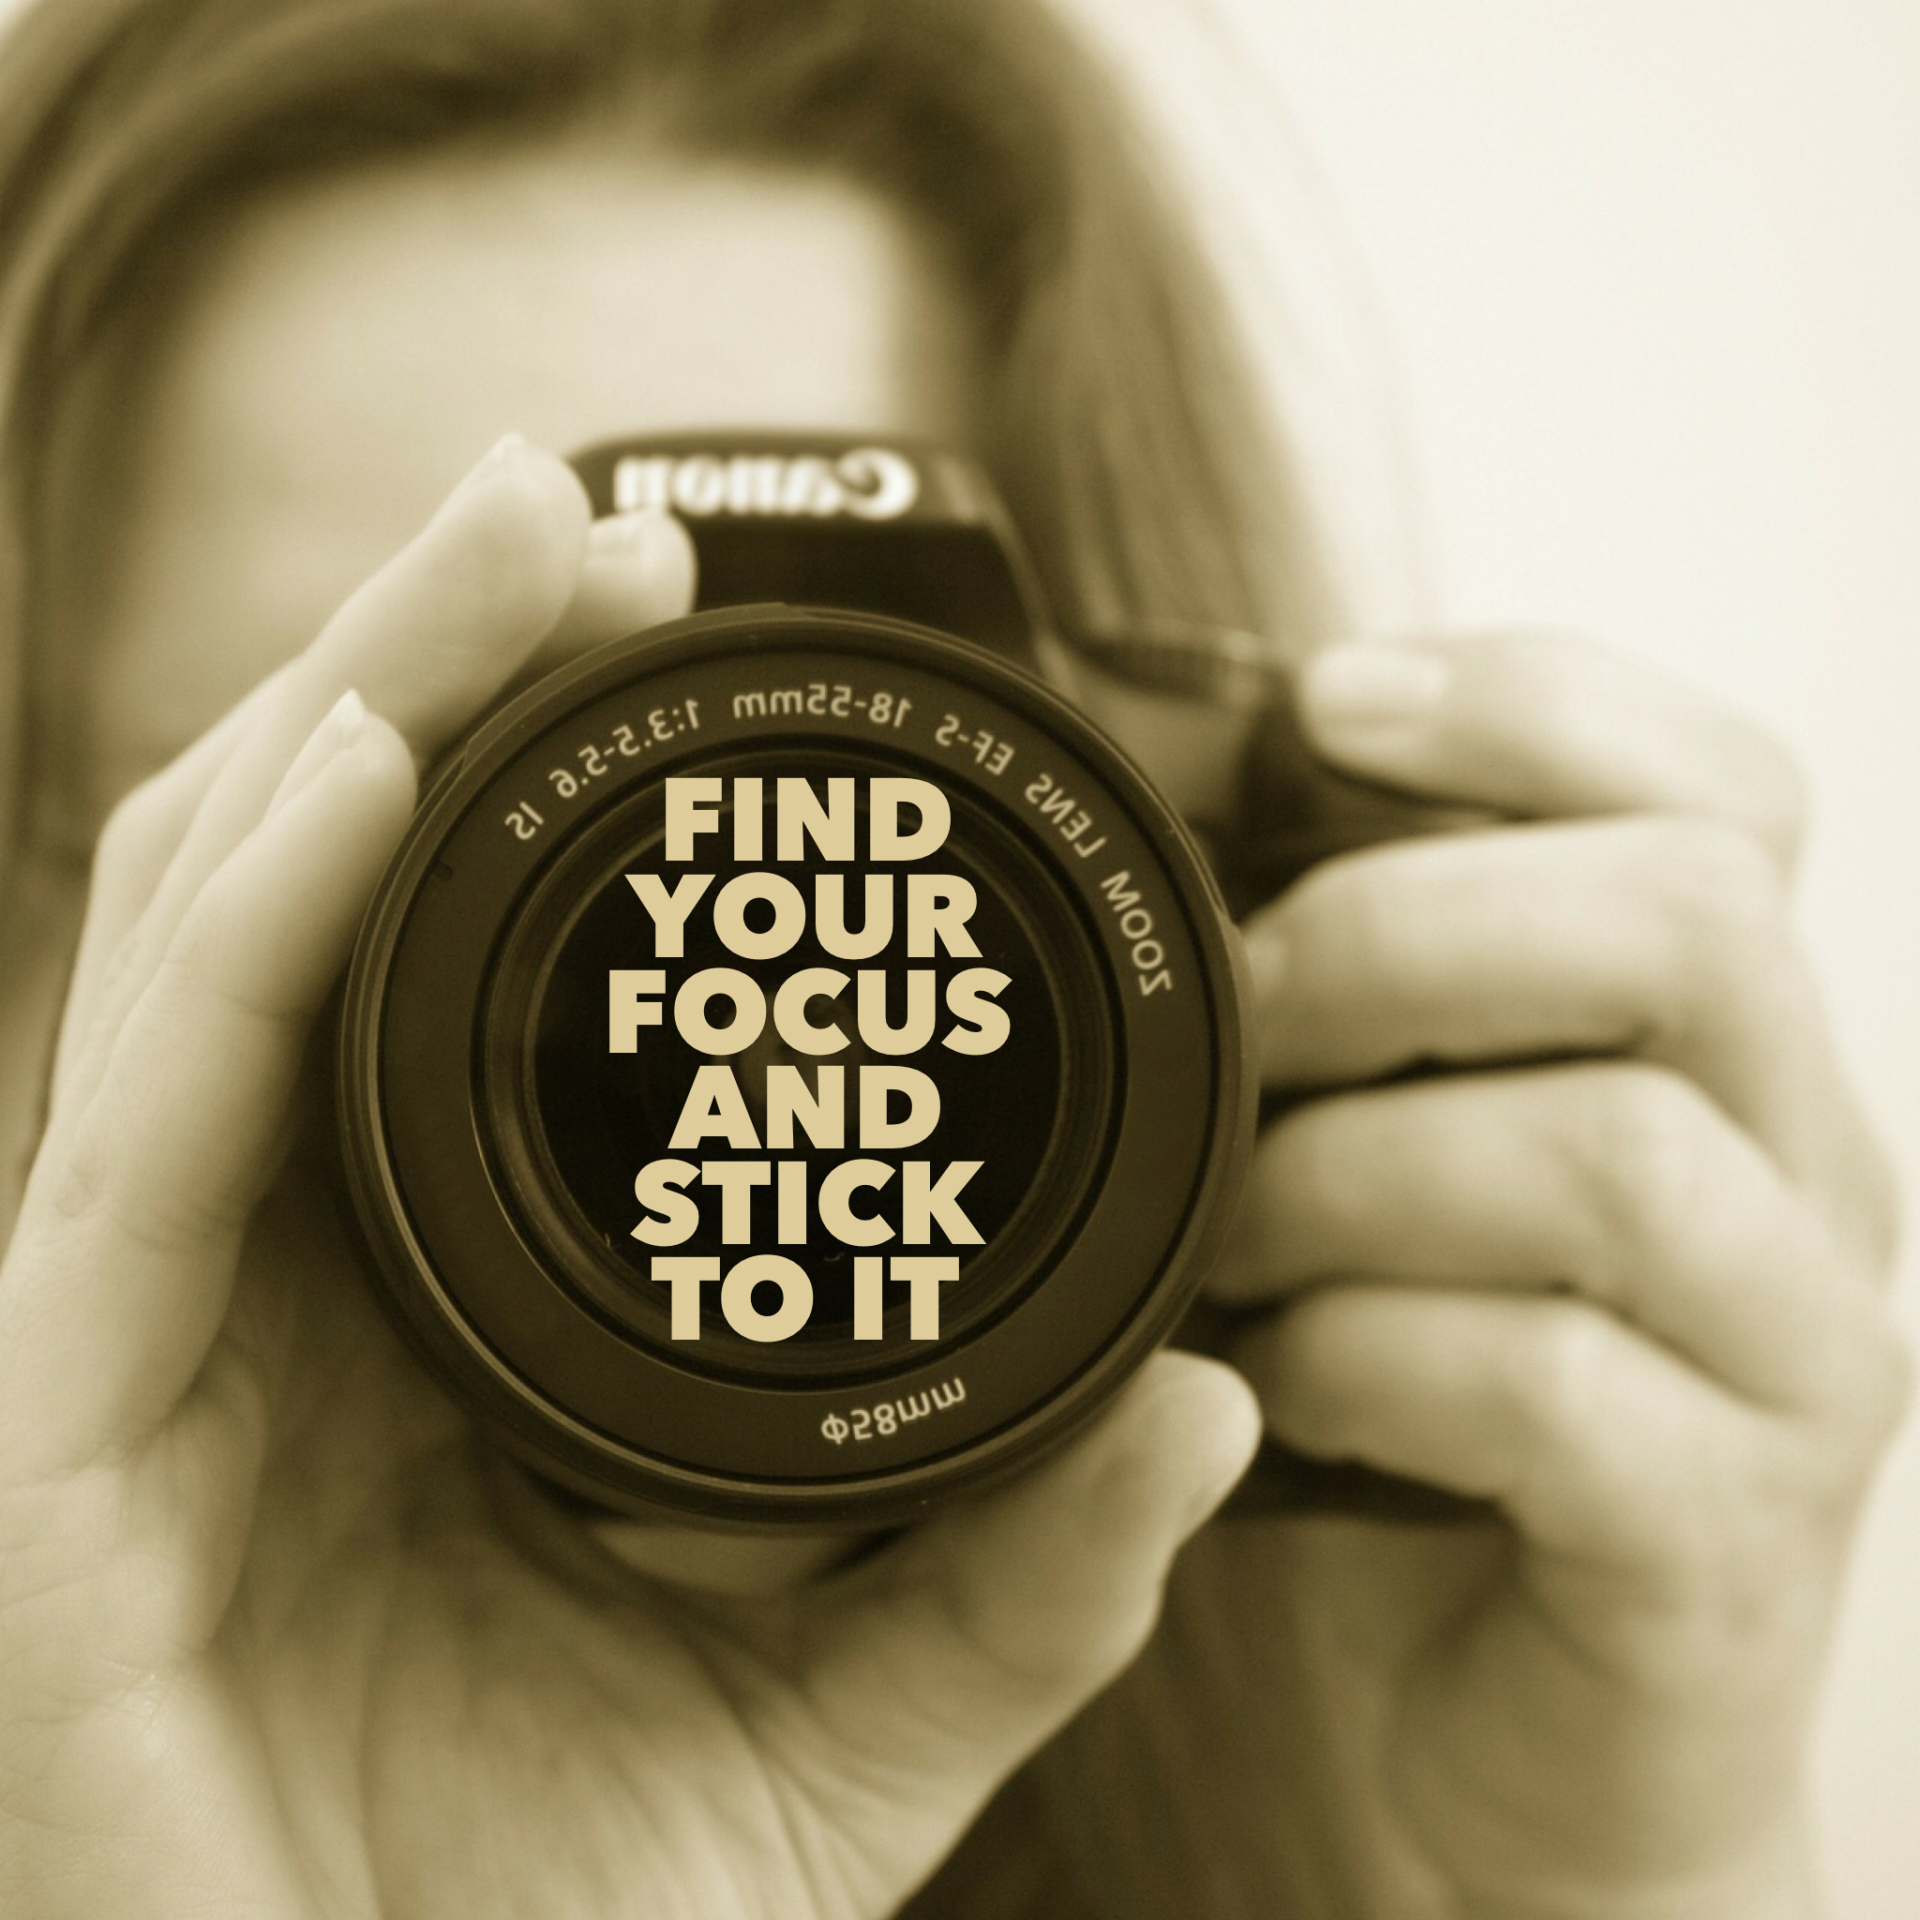 Find your focus and stick to it